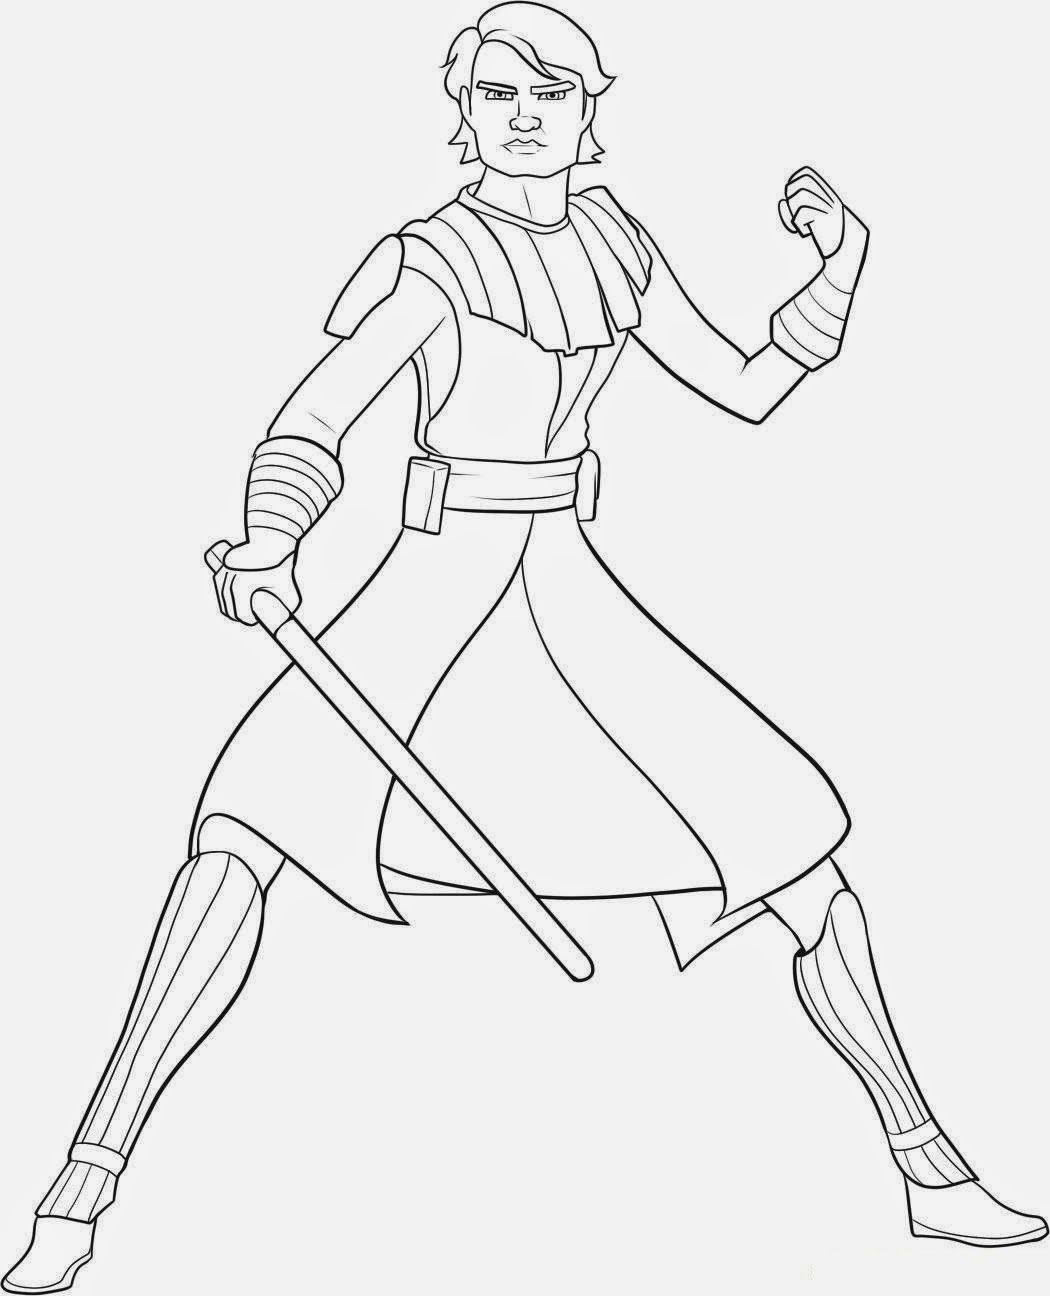 anakin skywalker coloring pages anakin skywalker coloring page topcoloringpagesnet anakin skywalker pages coloring